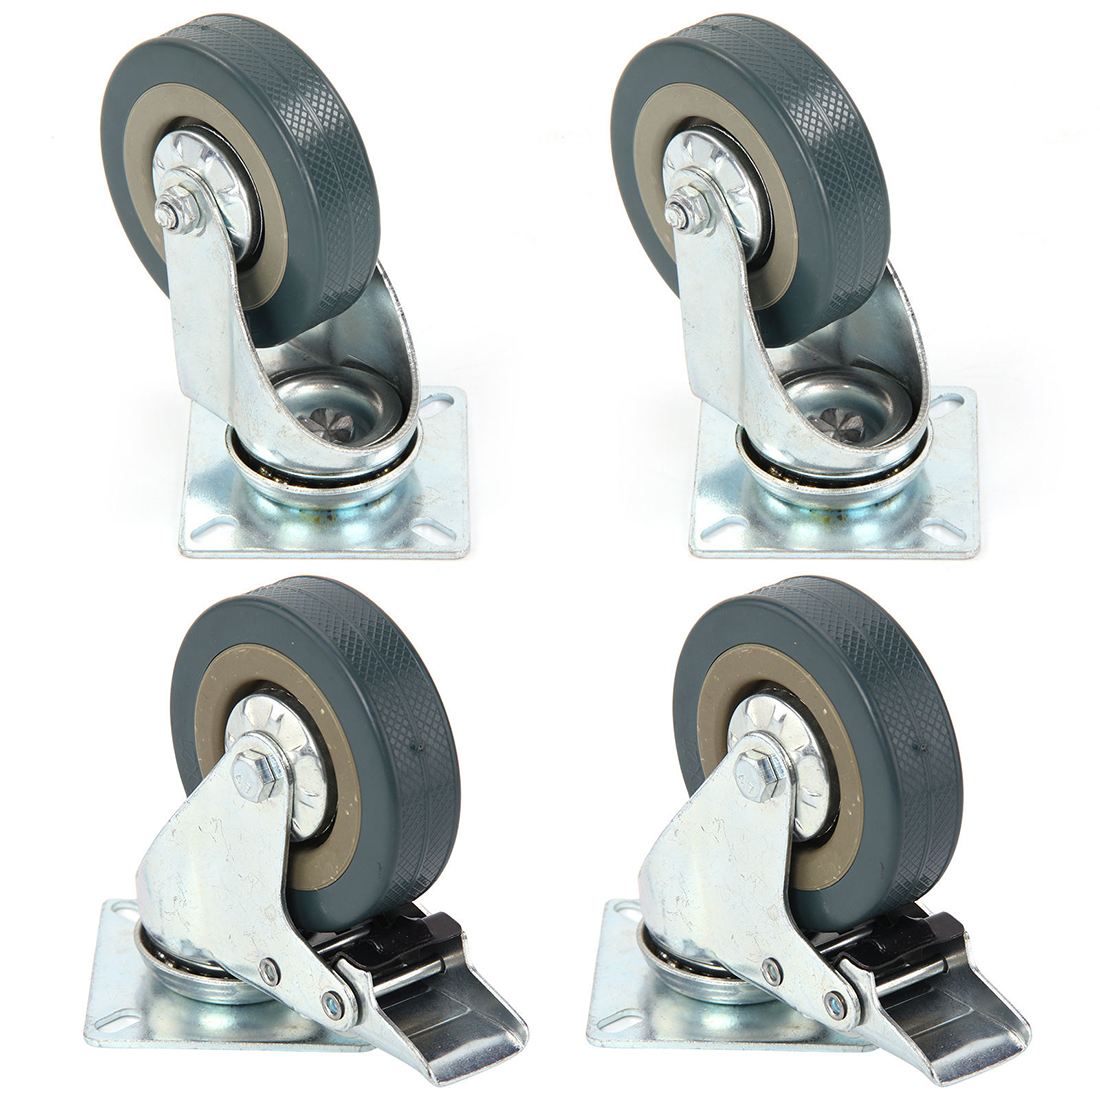 Set of Heavy Duty 2.5/3/4/5 Inch Rubber Swivel Castor Wheels Trolley Caster Brake 2 With Brake + 2 Without Brake Universal Wheel heavy duty 75mm rubber wheel swivel castor wheels trolley caster brake set of castor with brake